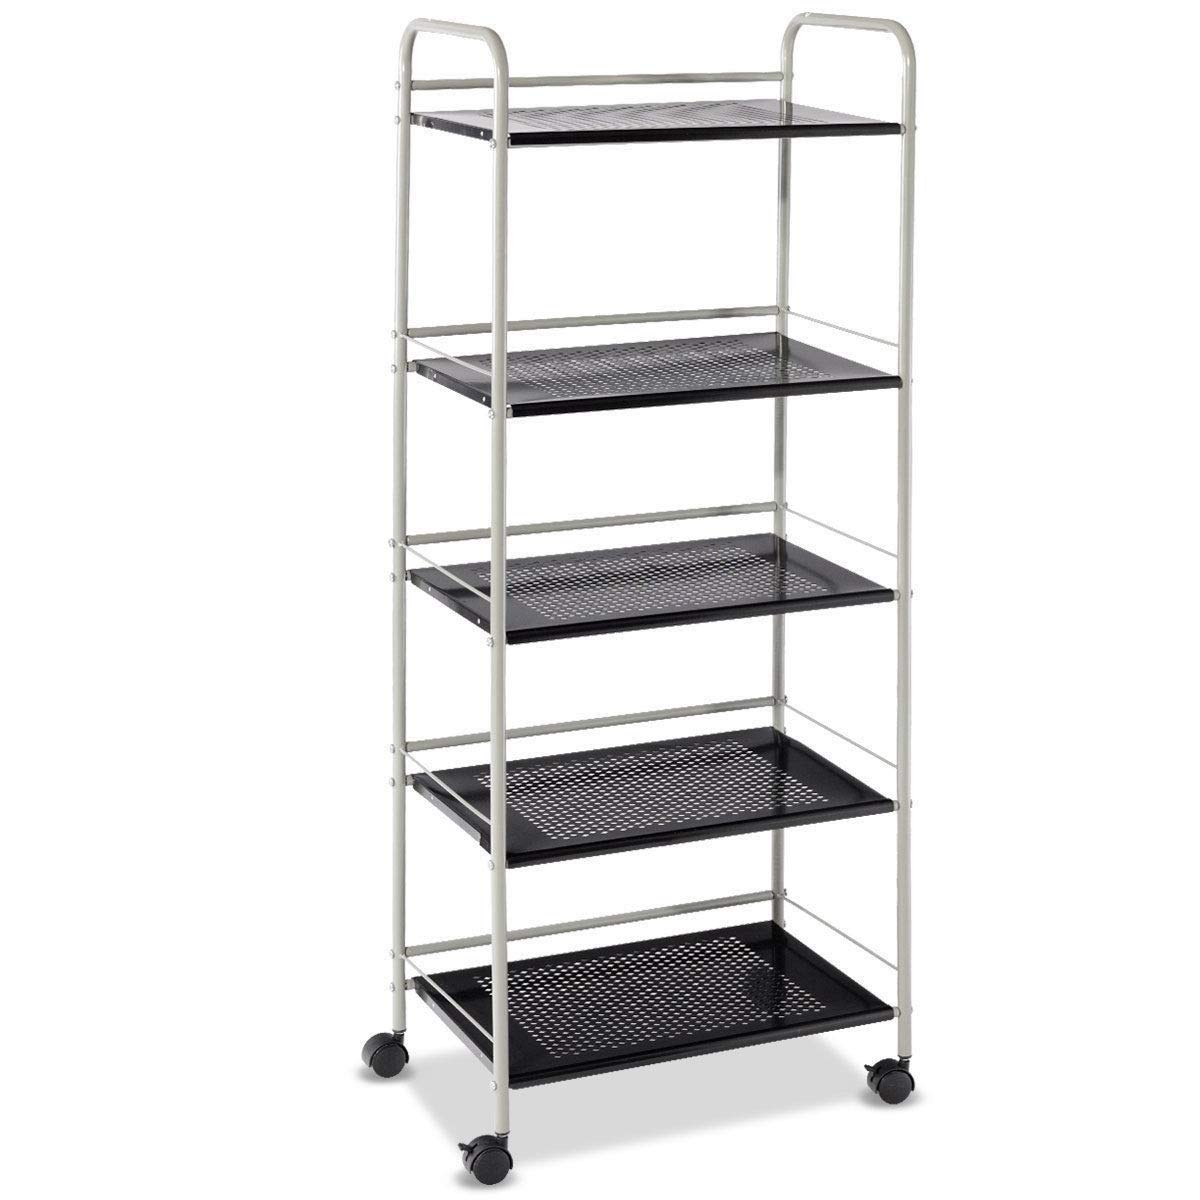 Lapha' 5 Tier Shelf Garage Table Shelves Rust-Resistant and Heavy-Duty Steel Rolling Serving Cart Storage Bar Kitchen Display Cart Side Table Rack Kitchen Office Serving Organizer Office Kitchen